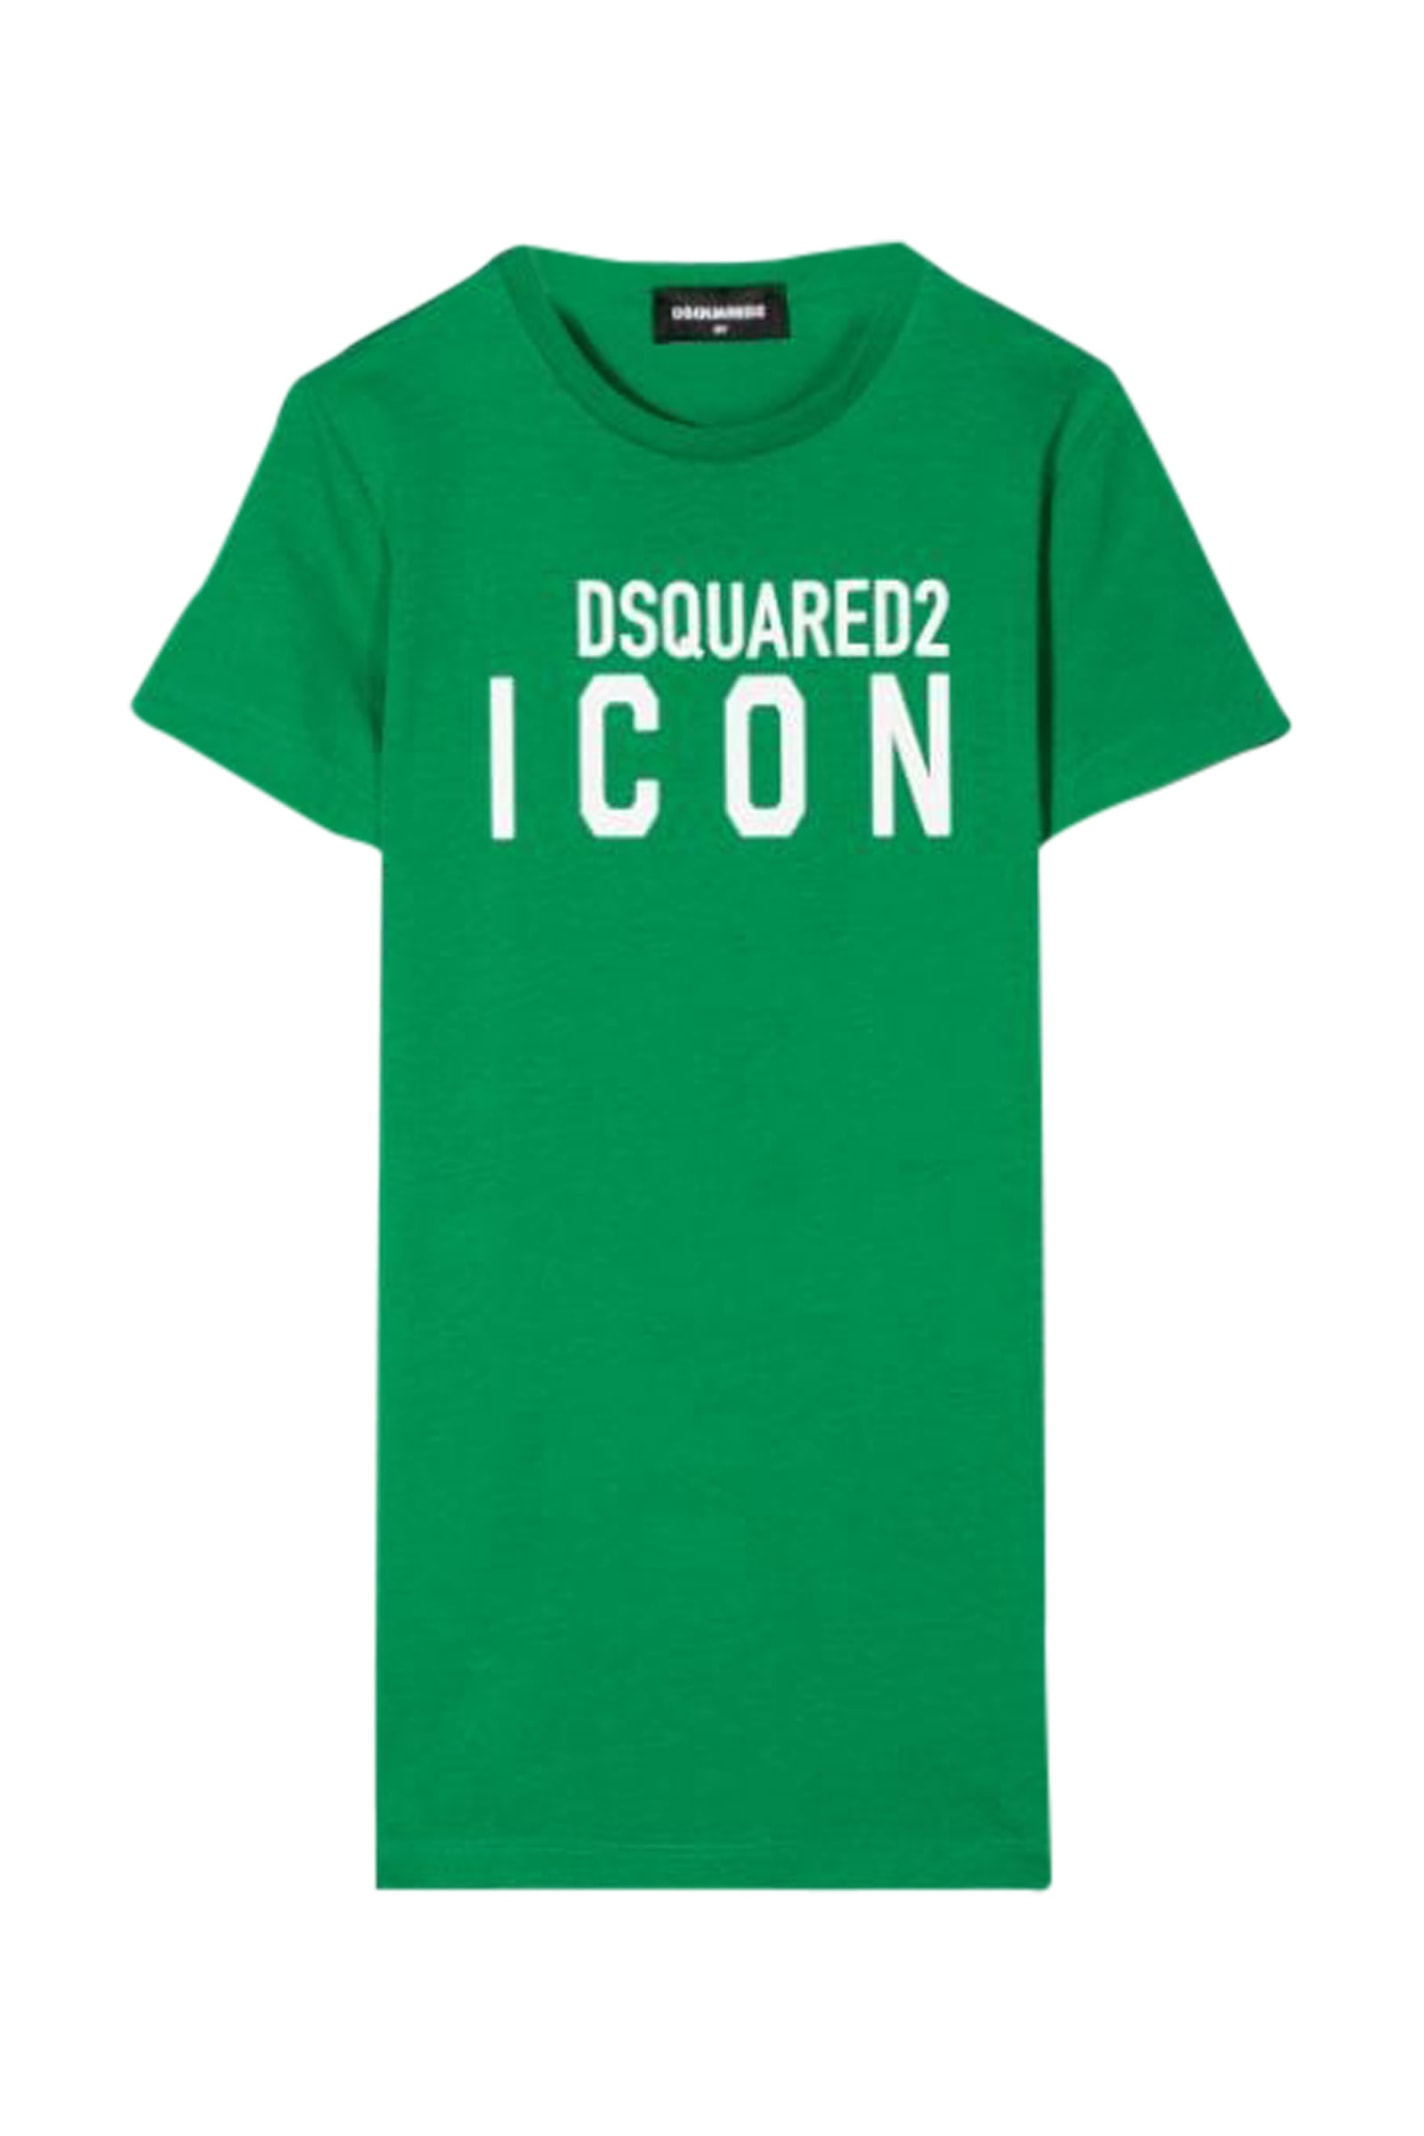 Buy Dsquared2 Kids Icon T-shirt Model Dress online, shop Dsquared2 with free shipping